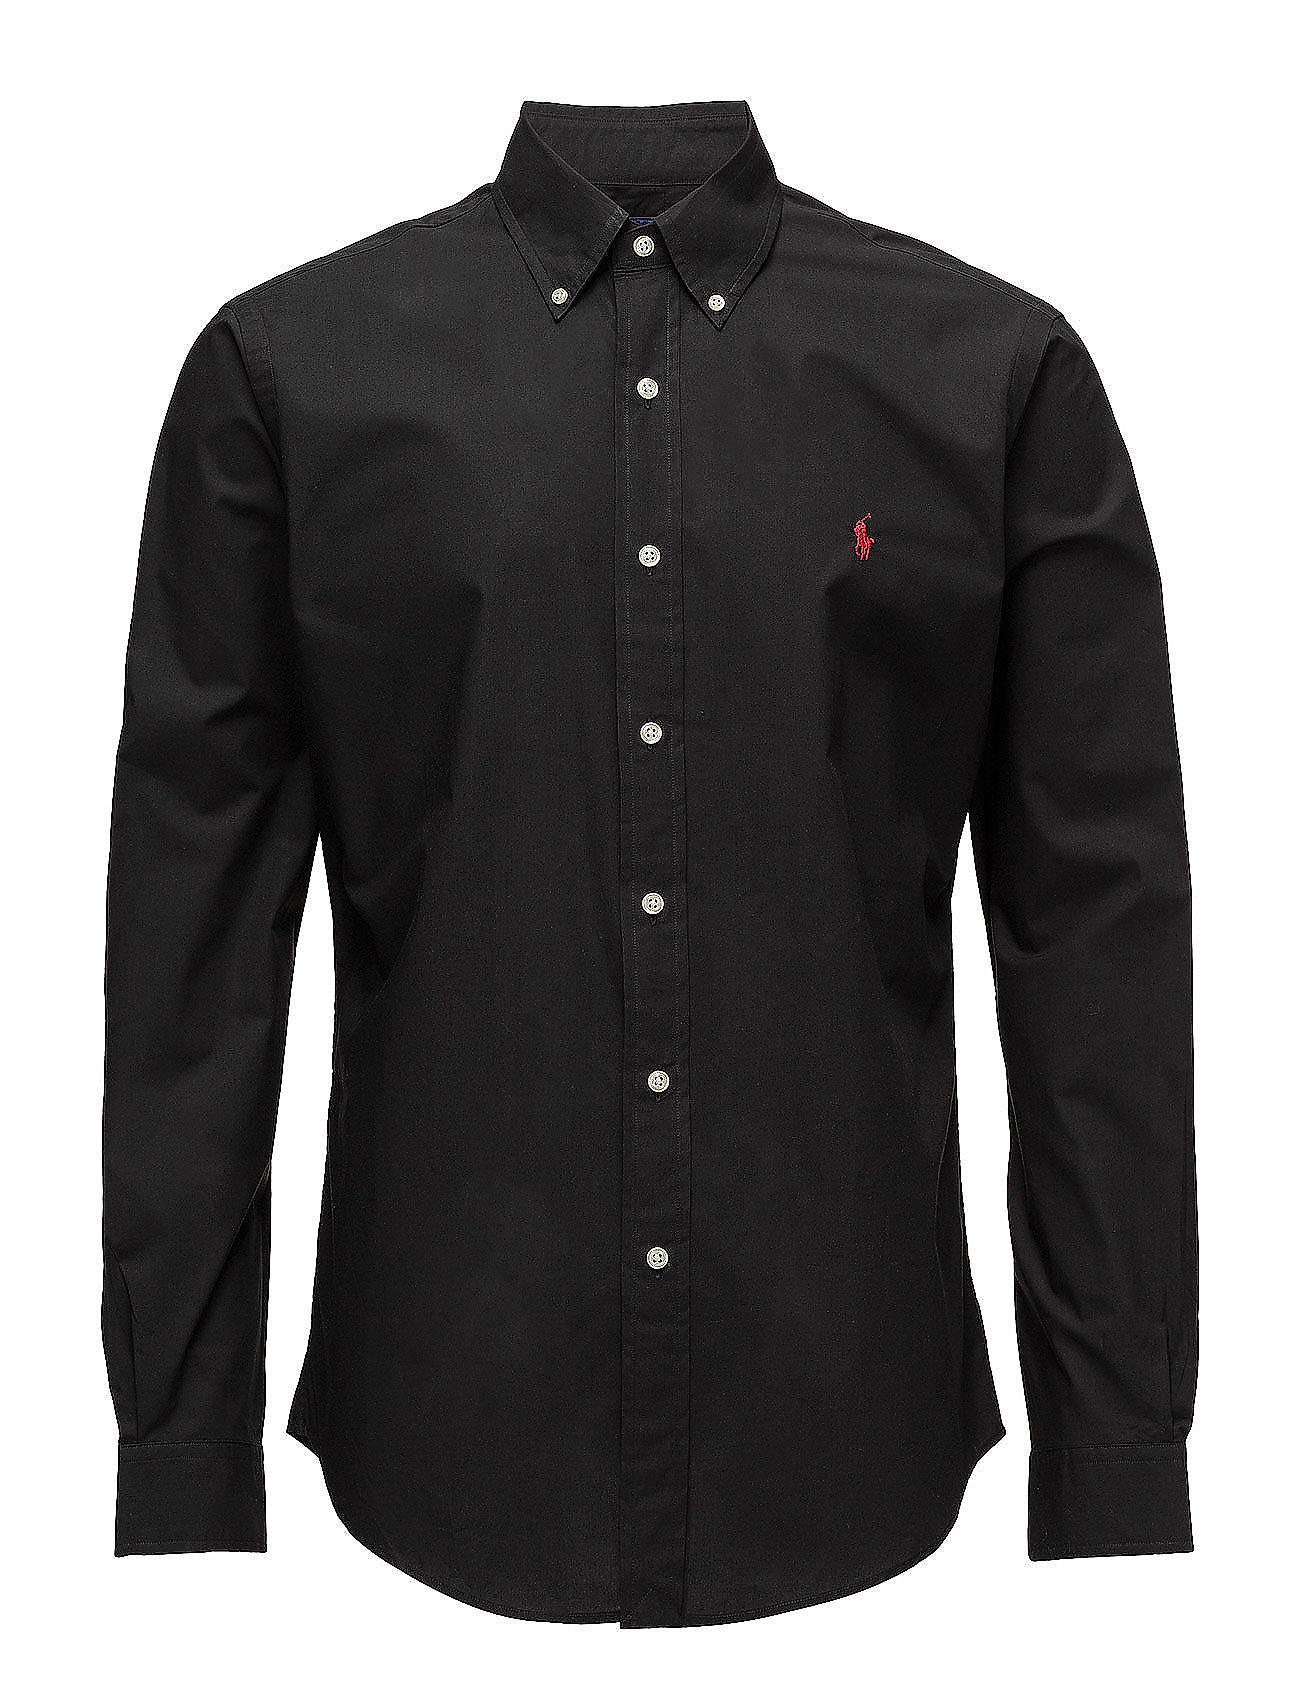 Polo Ralph Lauren Slim Fit Stretch Cotton Shirt - POLO BLACK